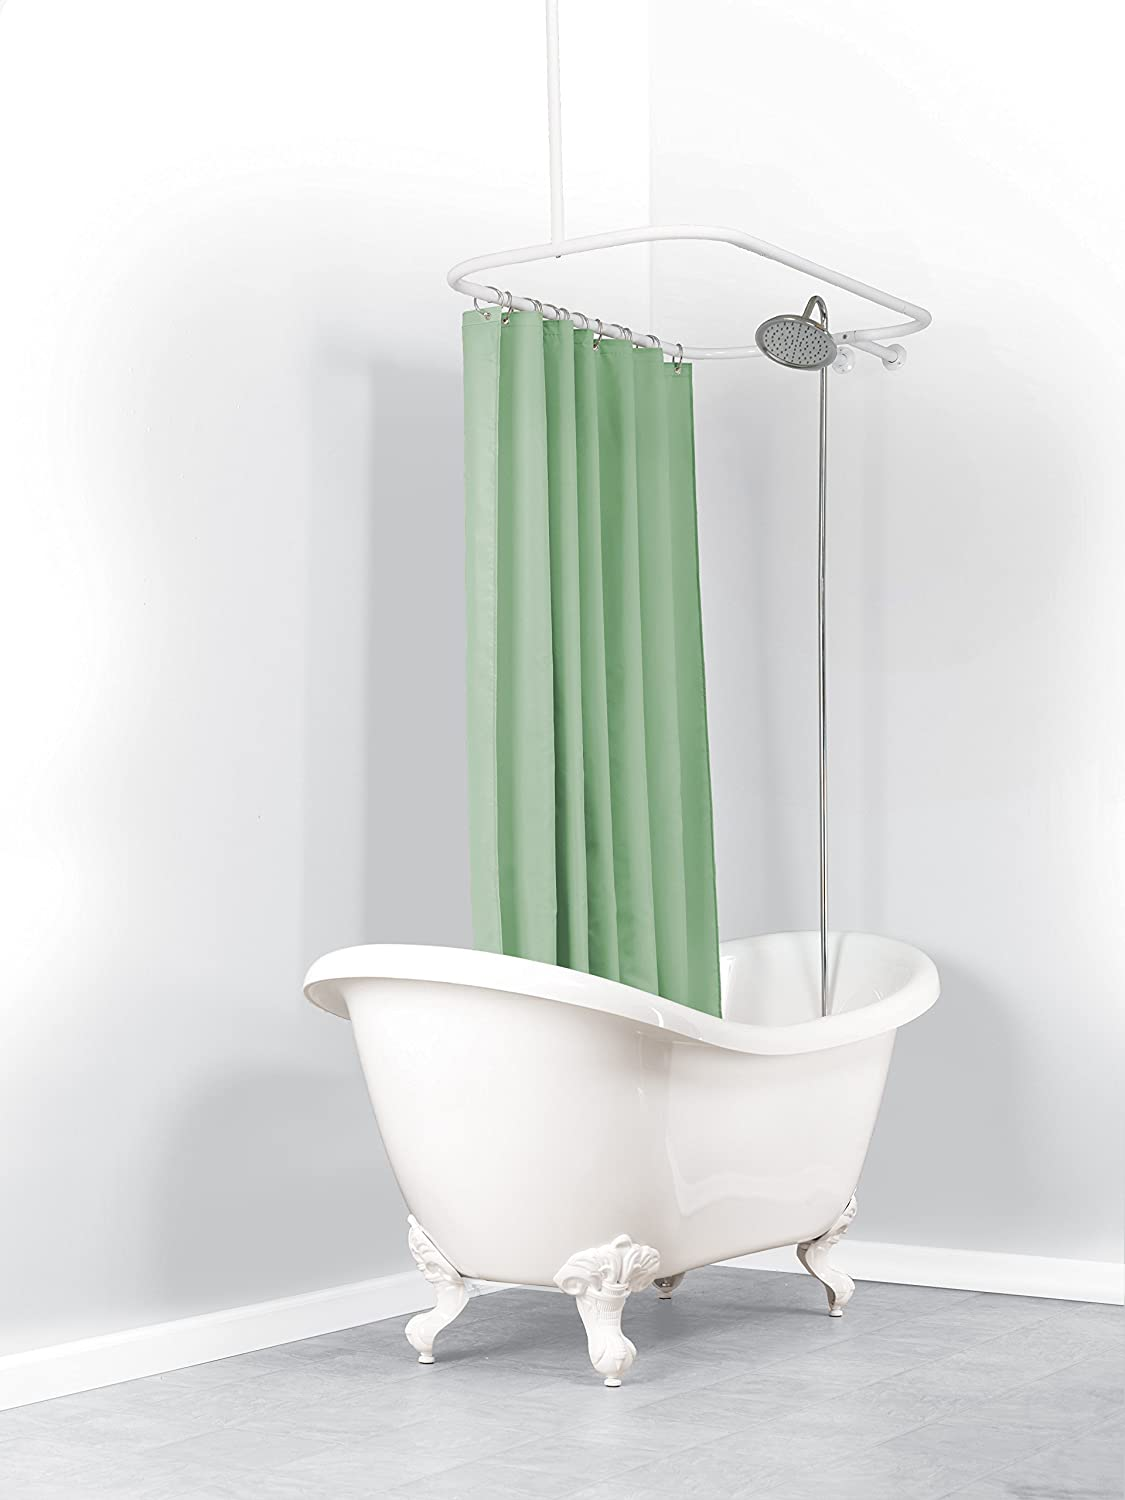 Zenith Hoop Shower Rod White Amazonca Home  Kitchen - Clawfoot tub shower fixtures